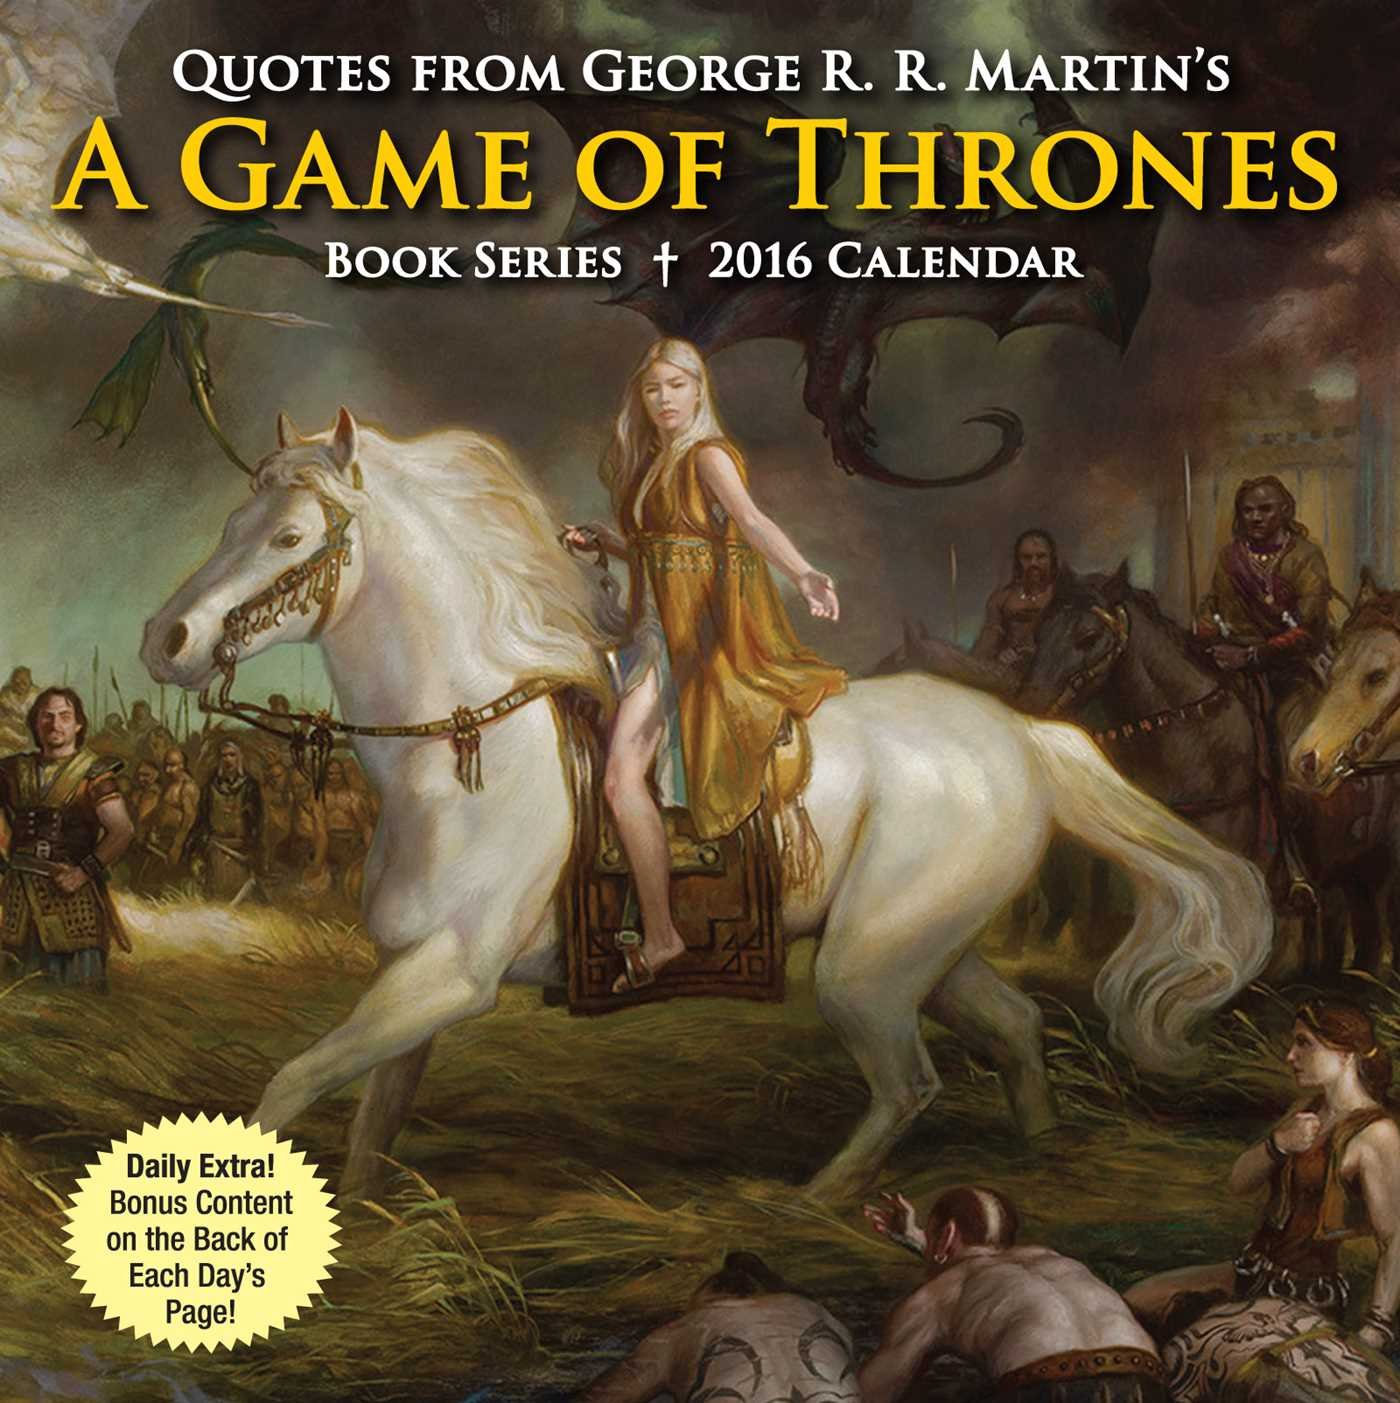 Quotes from George R. R. Martin's A Game of Thrones Book Series 2016 Day-to-Day by Andrews McMeel Publishing